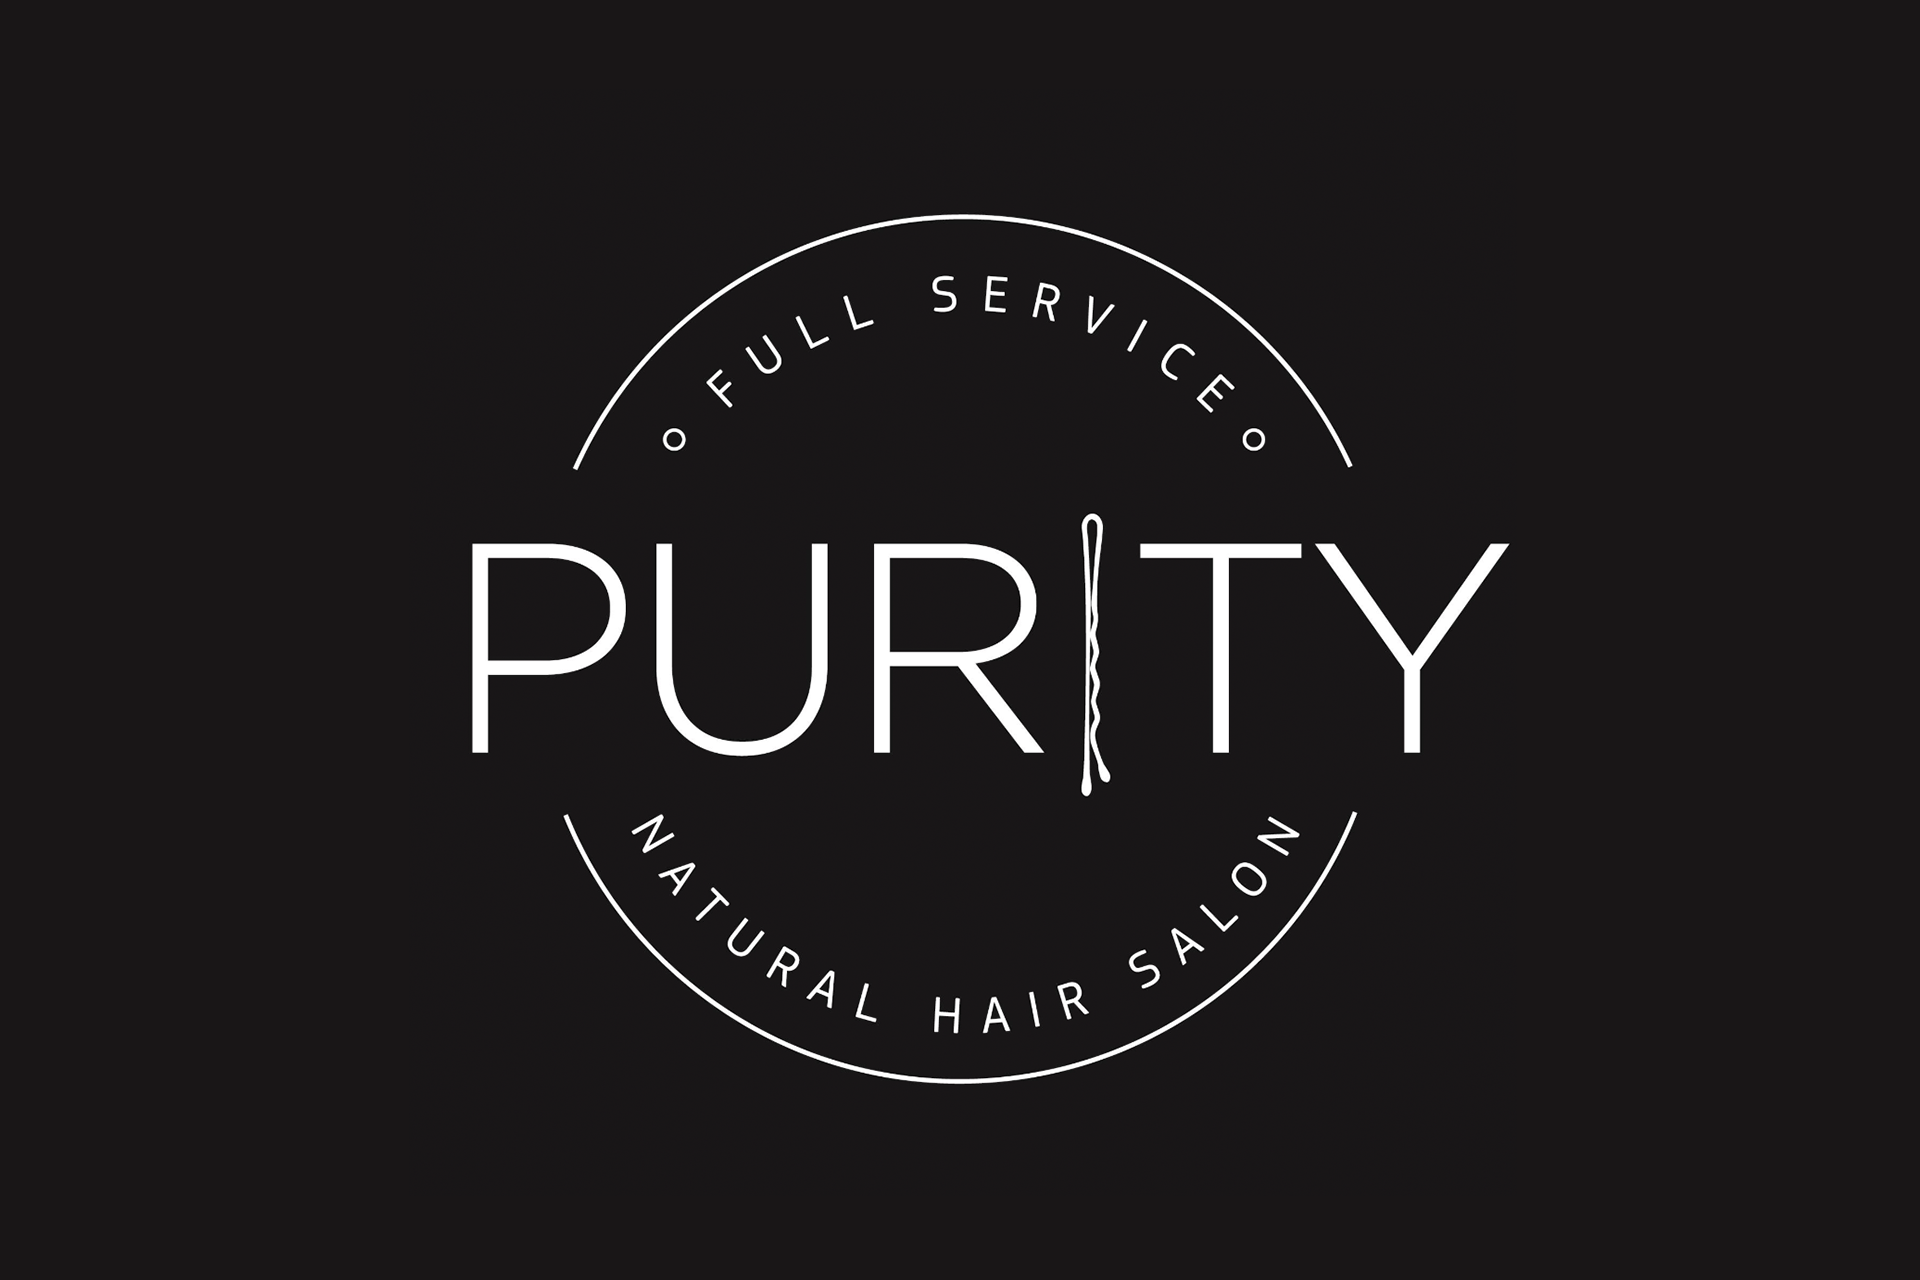 Salon purity in raleigh nc vagaro for 510 salon ink raleigh nc